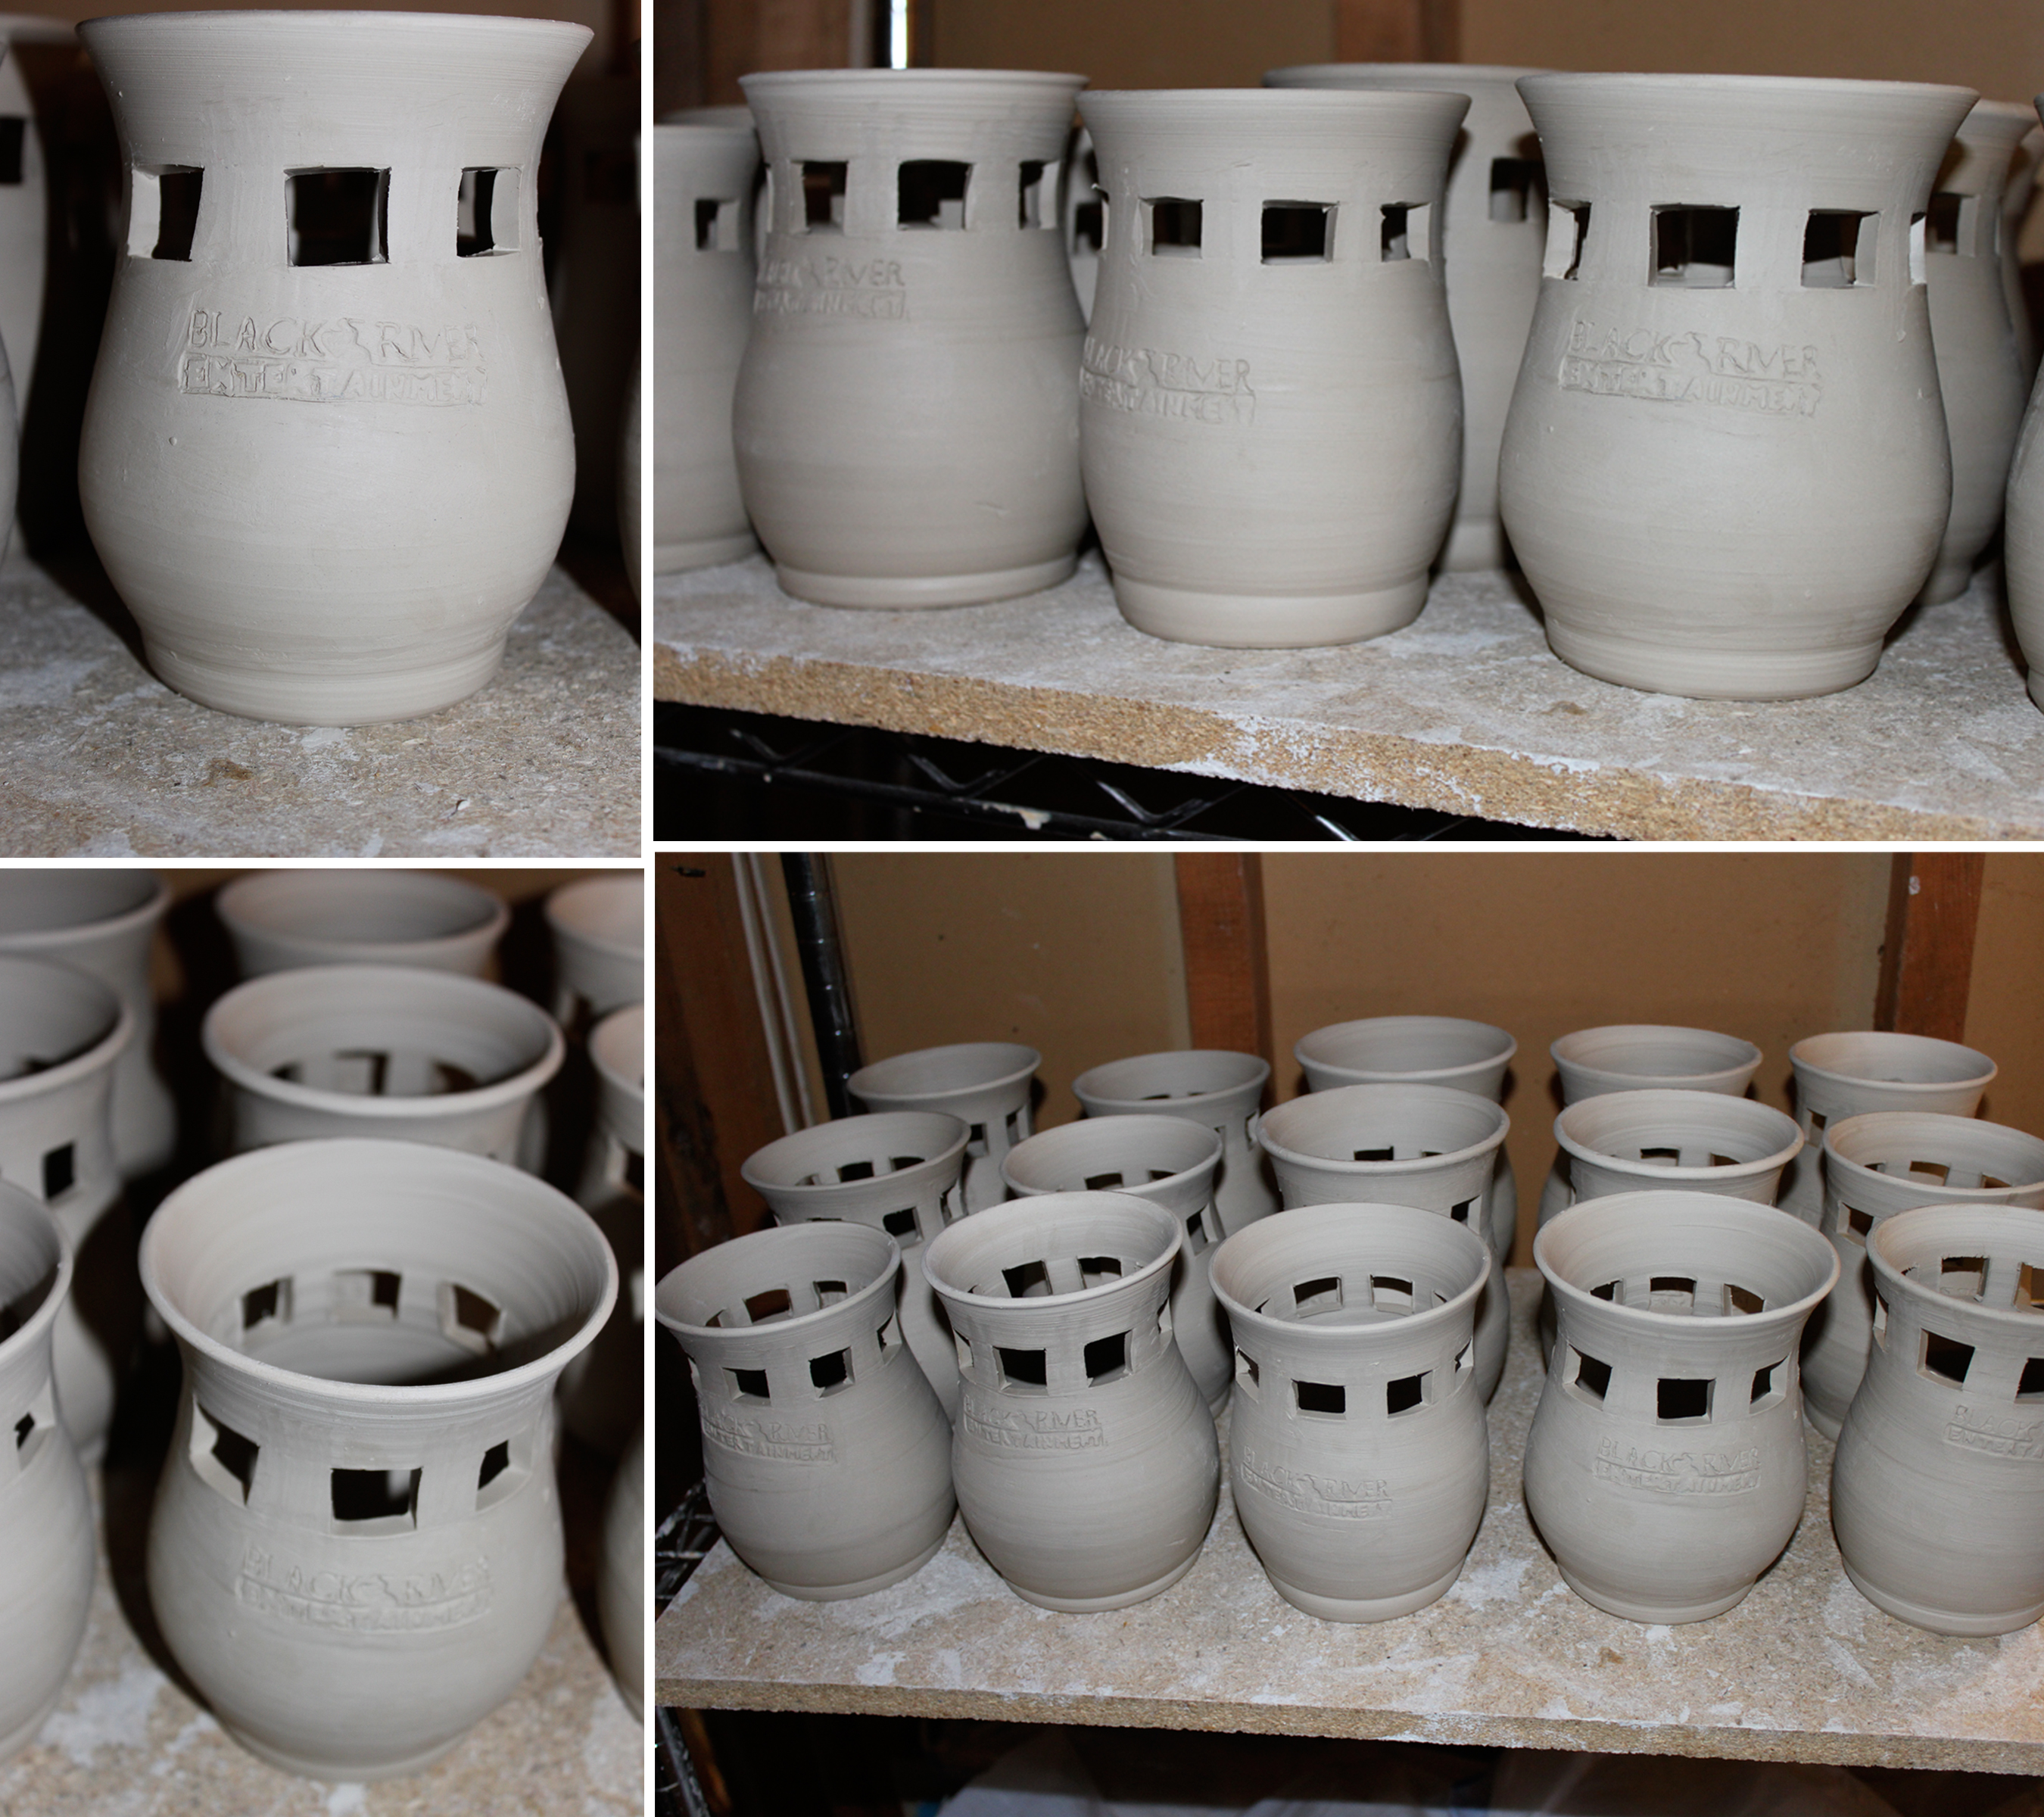 Finished candle pots drying out before a bisque fire